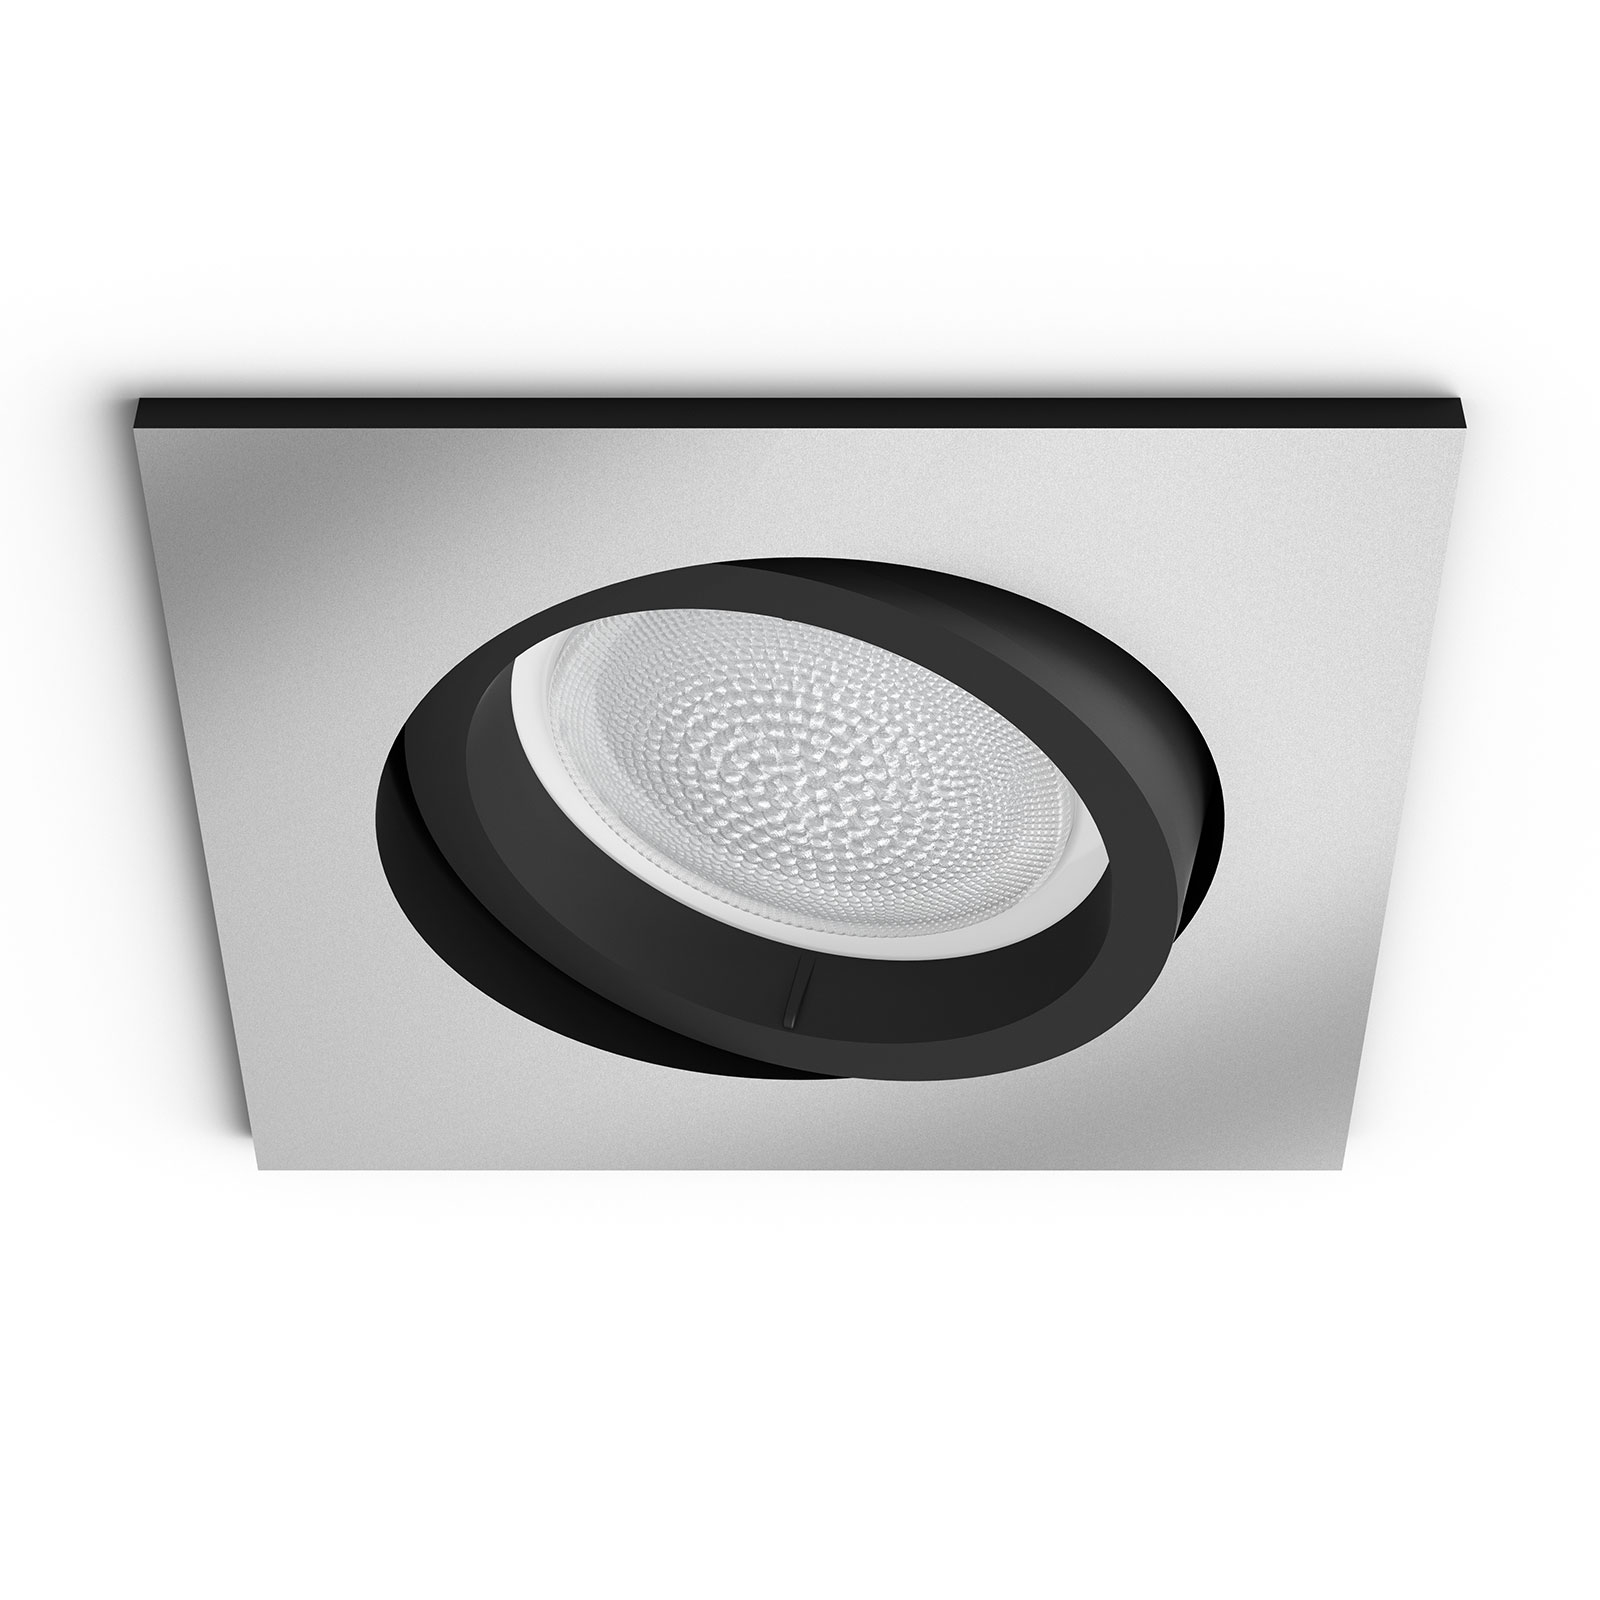 Philips Hue Centura LED-downlight kantet aluminium